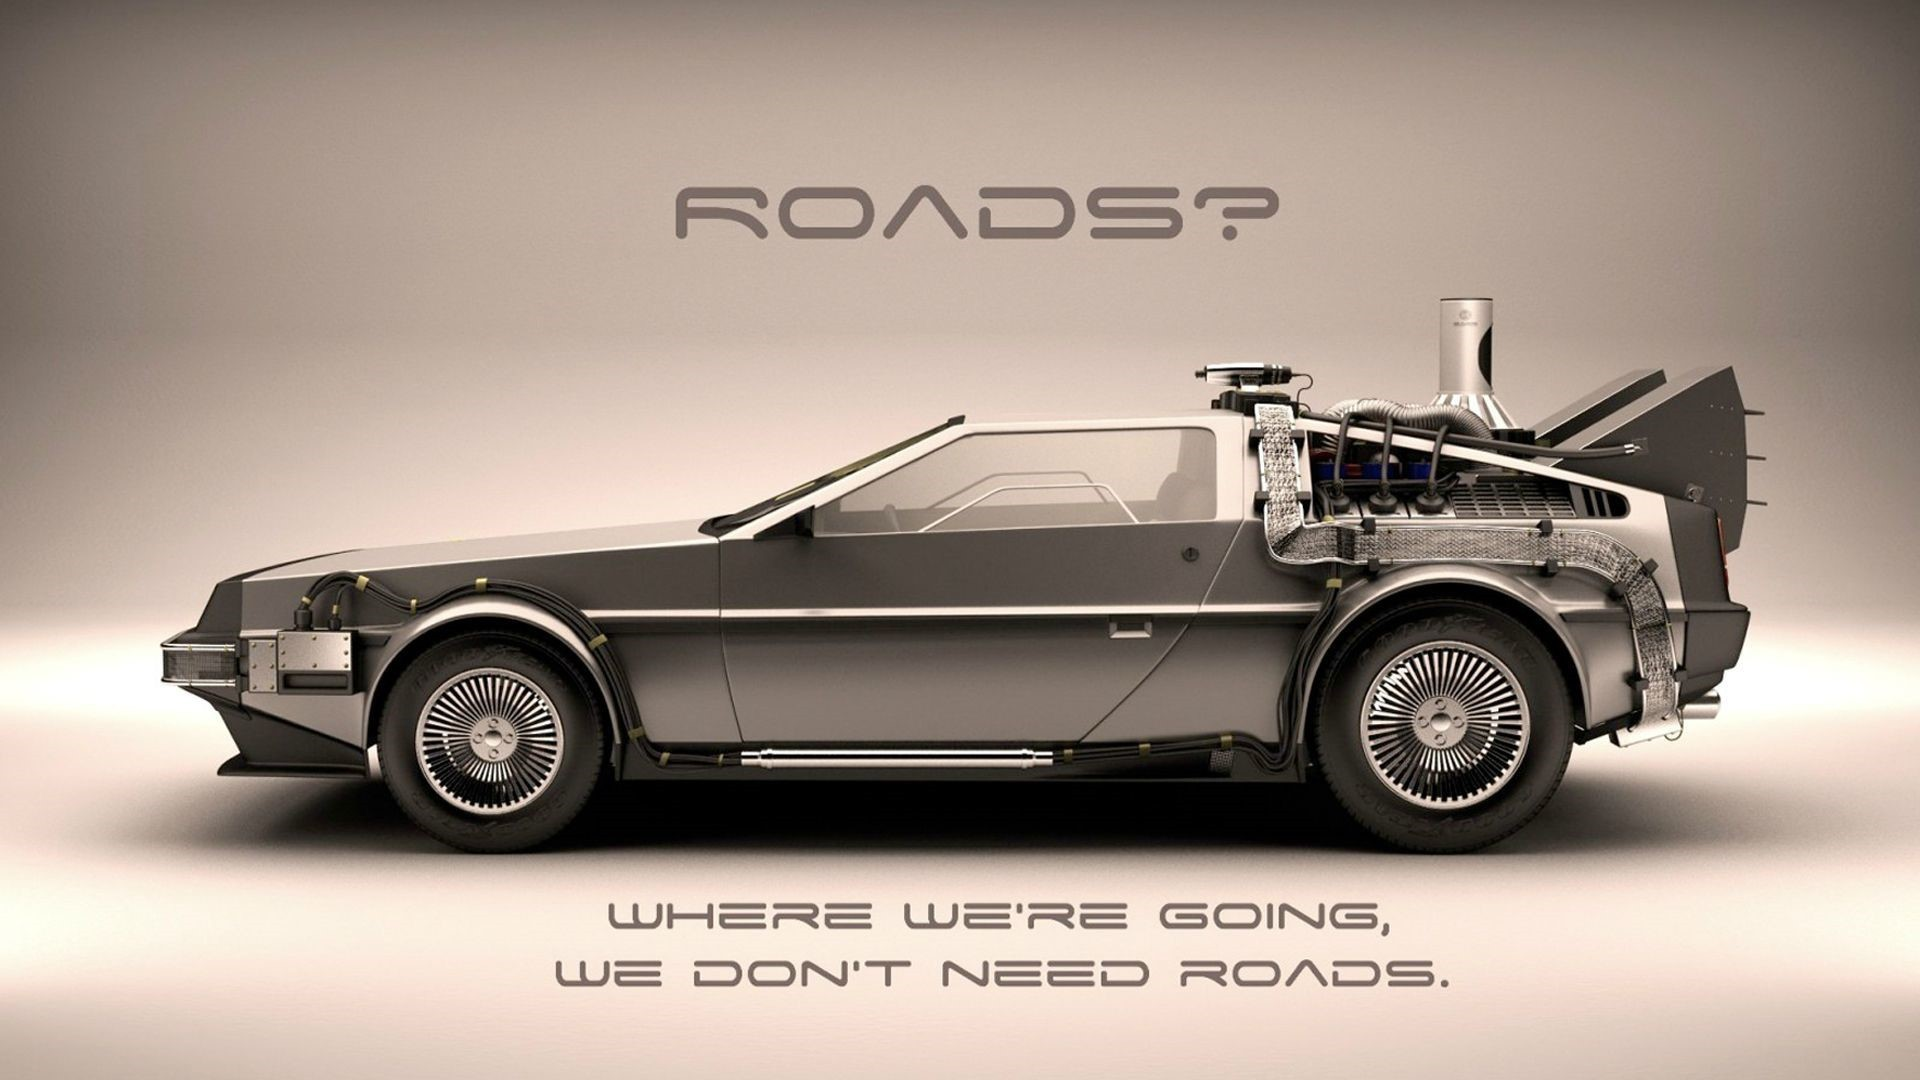 We're Going We Don't Need Roads Wallpaper 1920x1080 px